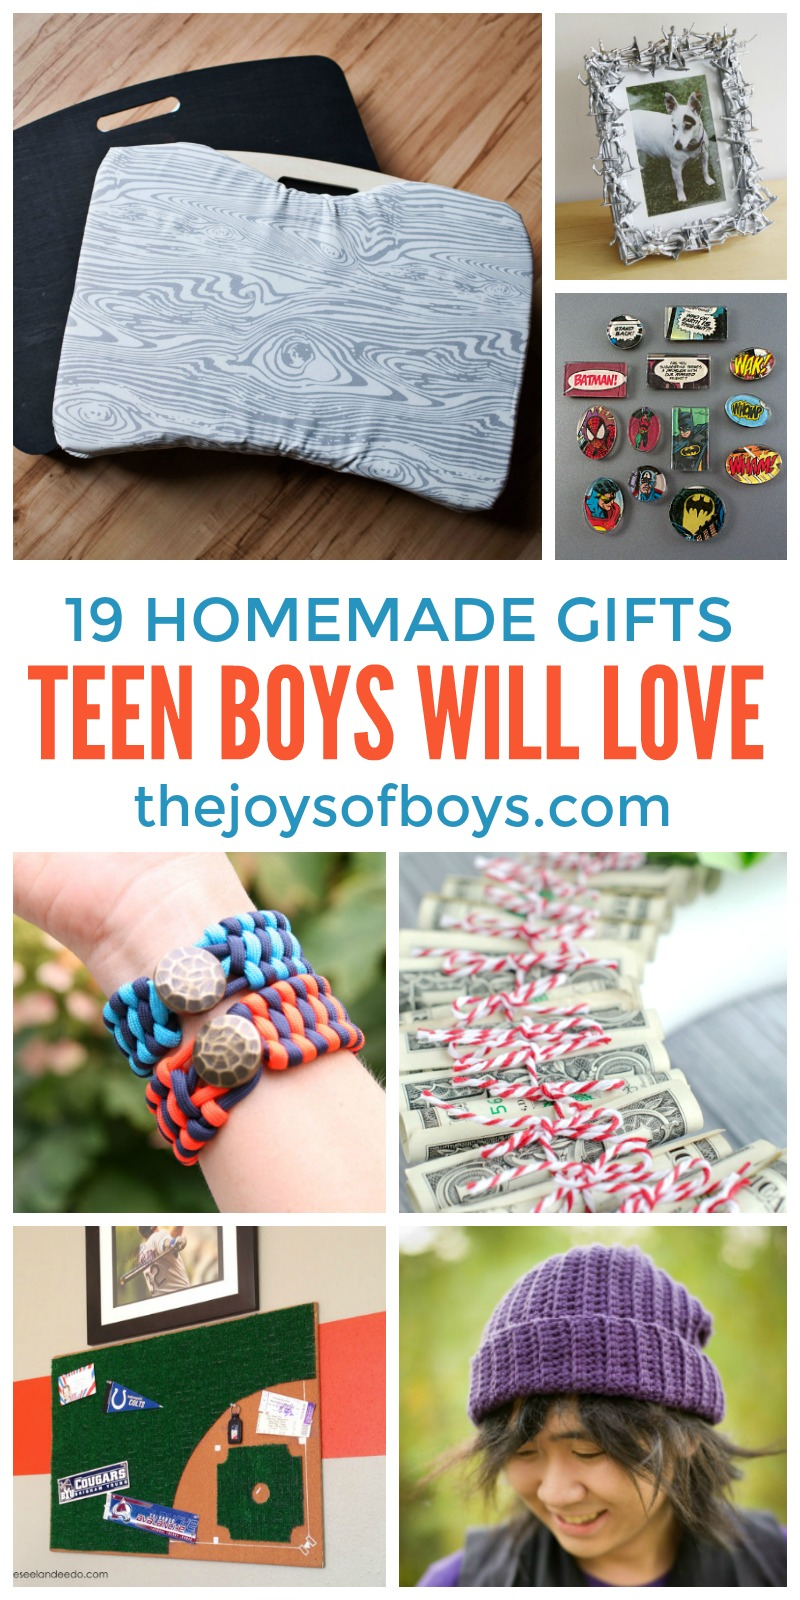 homemade gifts teen boys